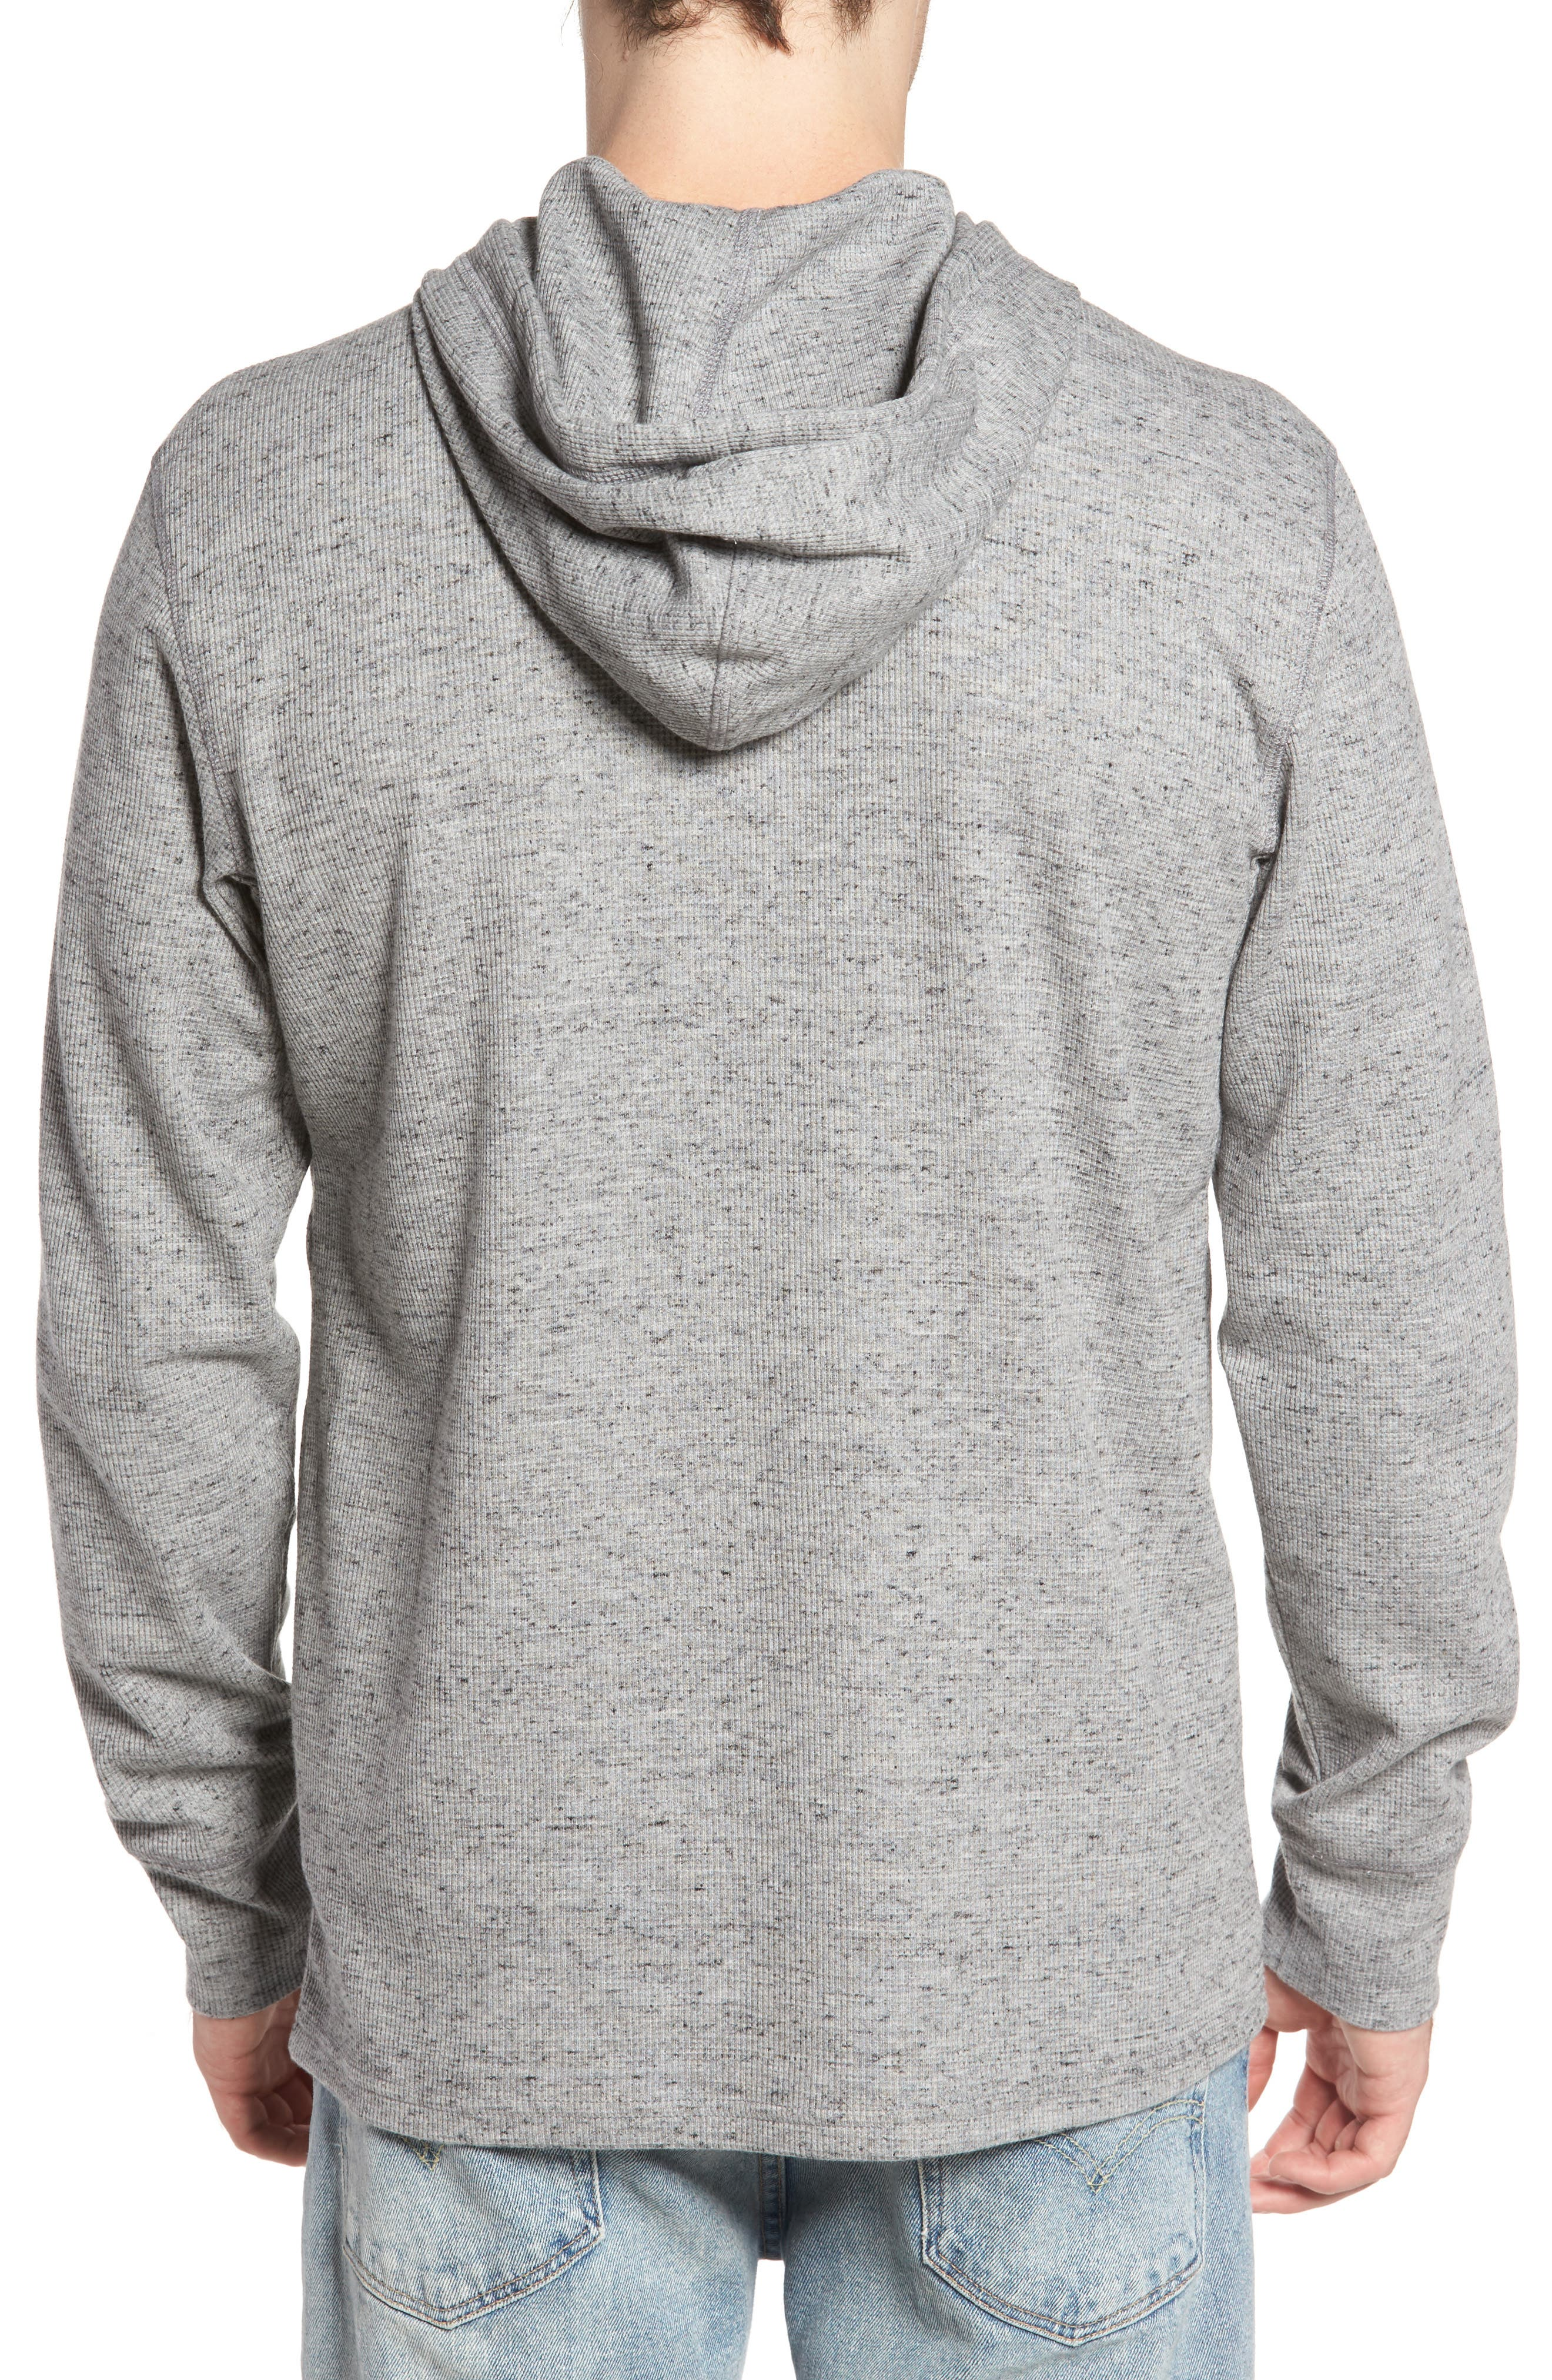 Boldin Thermal Pullover Hoodie,                             Alternate thumbnail 2, color,                             Light Grey